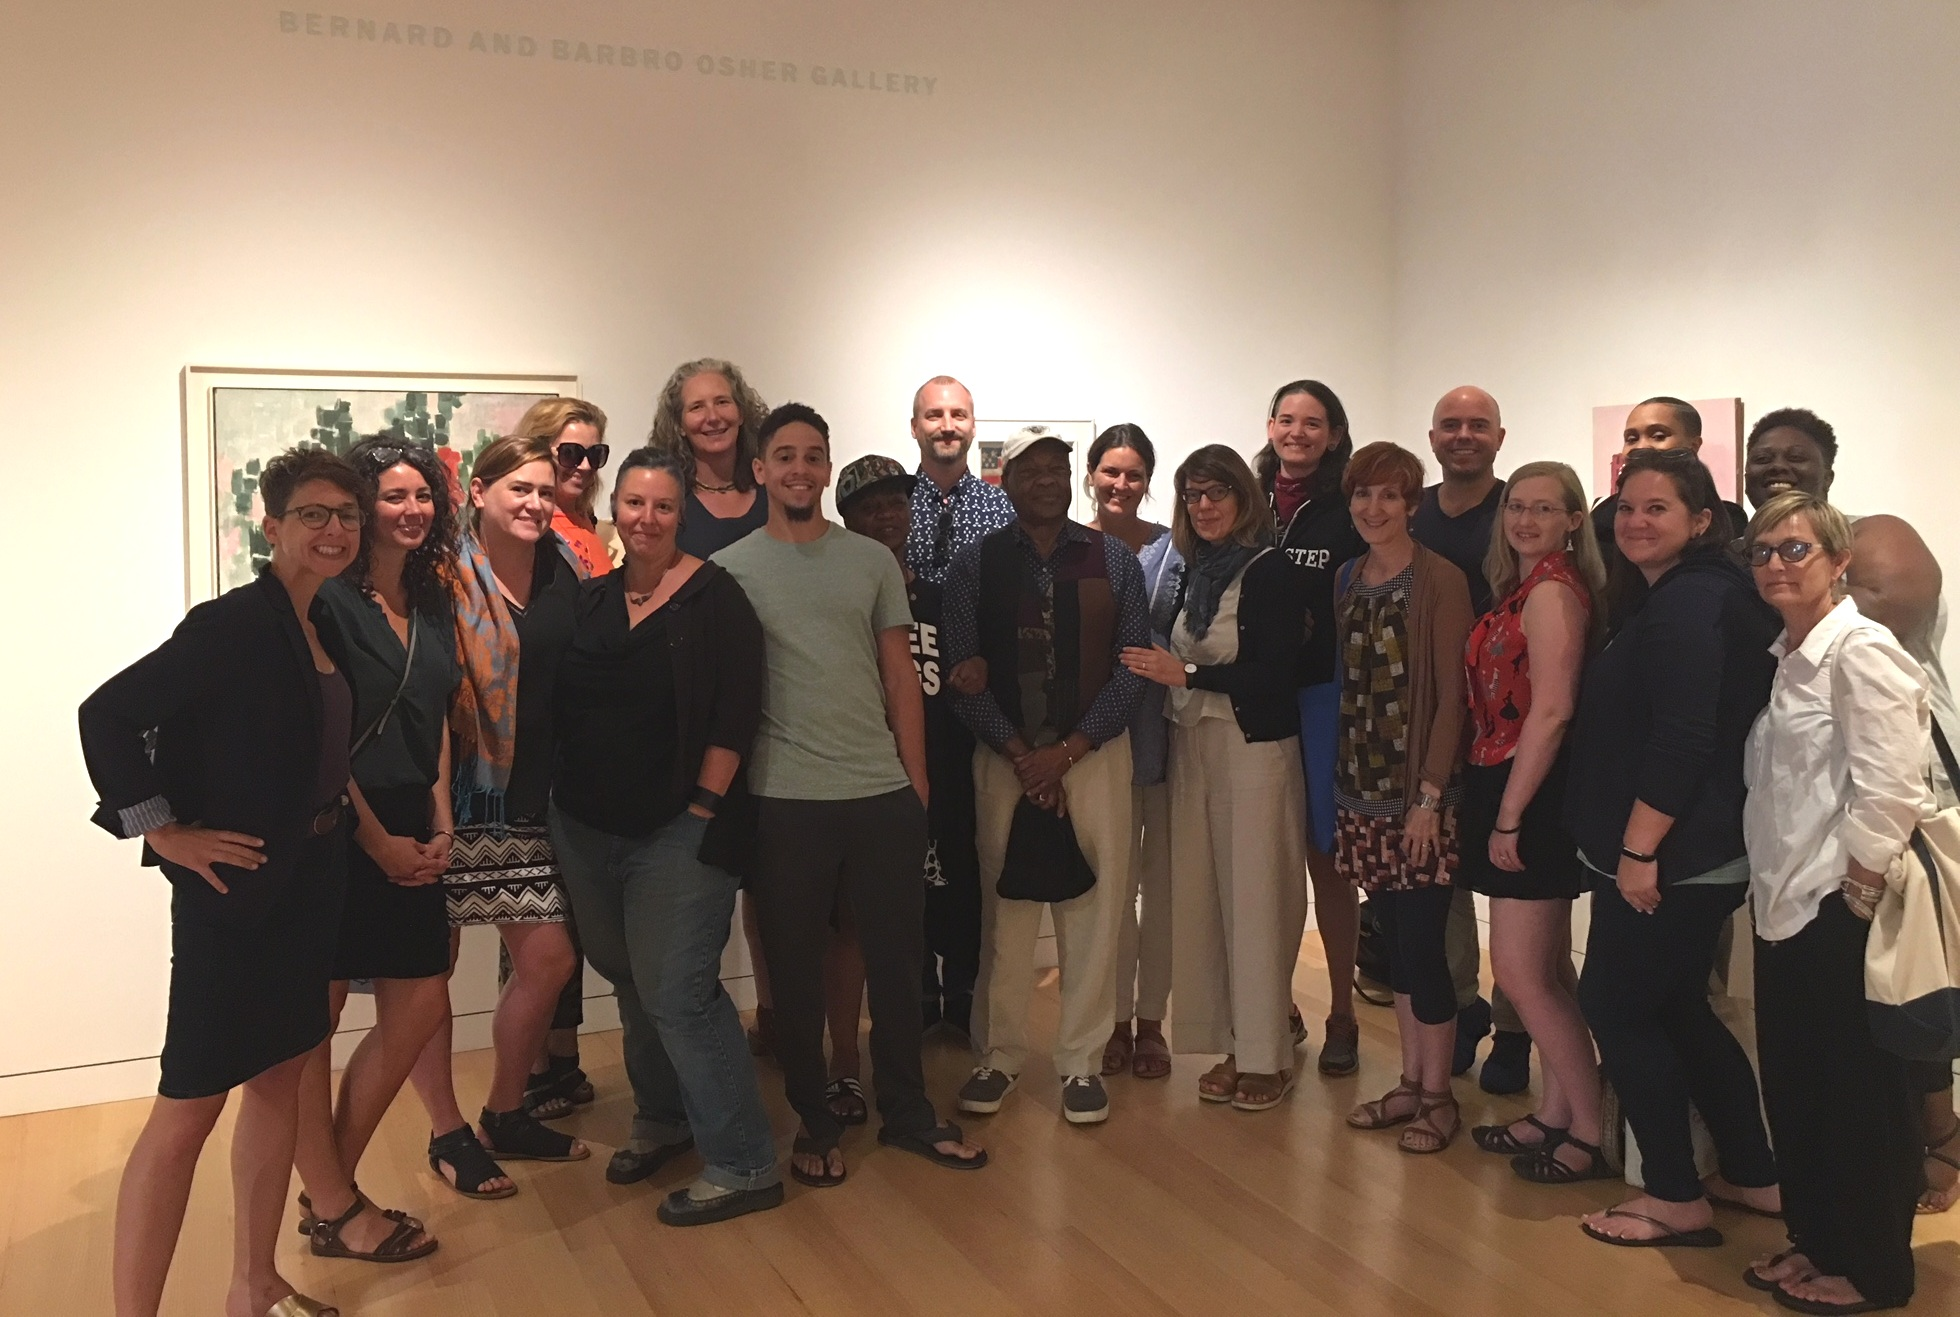 IDSVA students with Visiting Faculty Dr. David Driskell and Dr. Dejan Lukic, and IDSVA Director Dr. Simonetta Moro (center of photo). Colby College, Summer 2018. Photo courtesy of Alicia Lange.